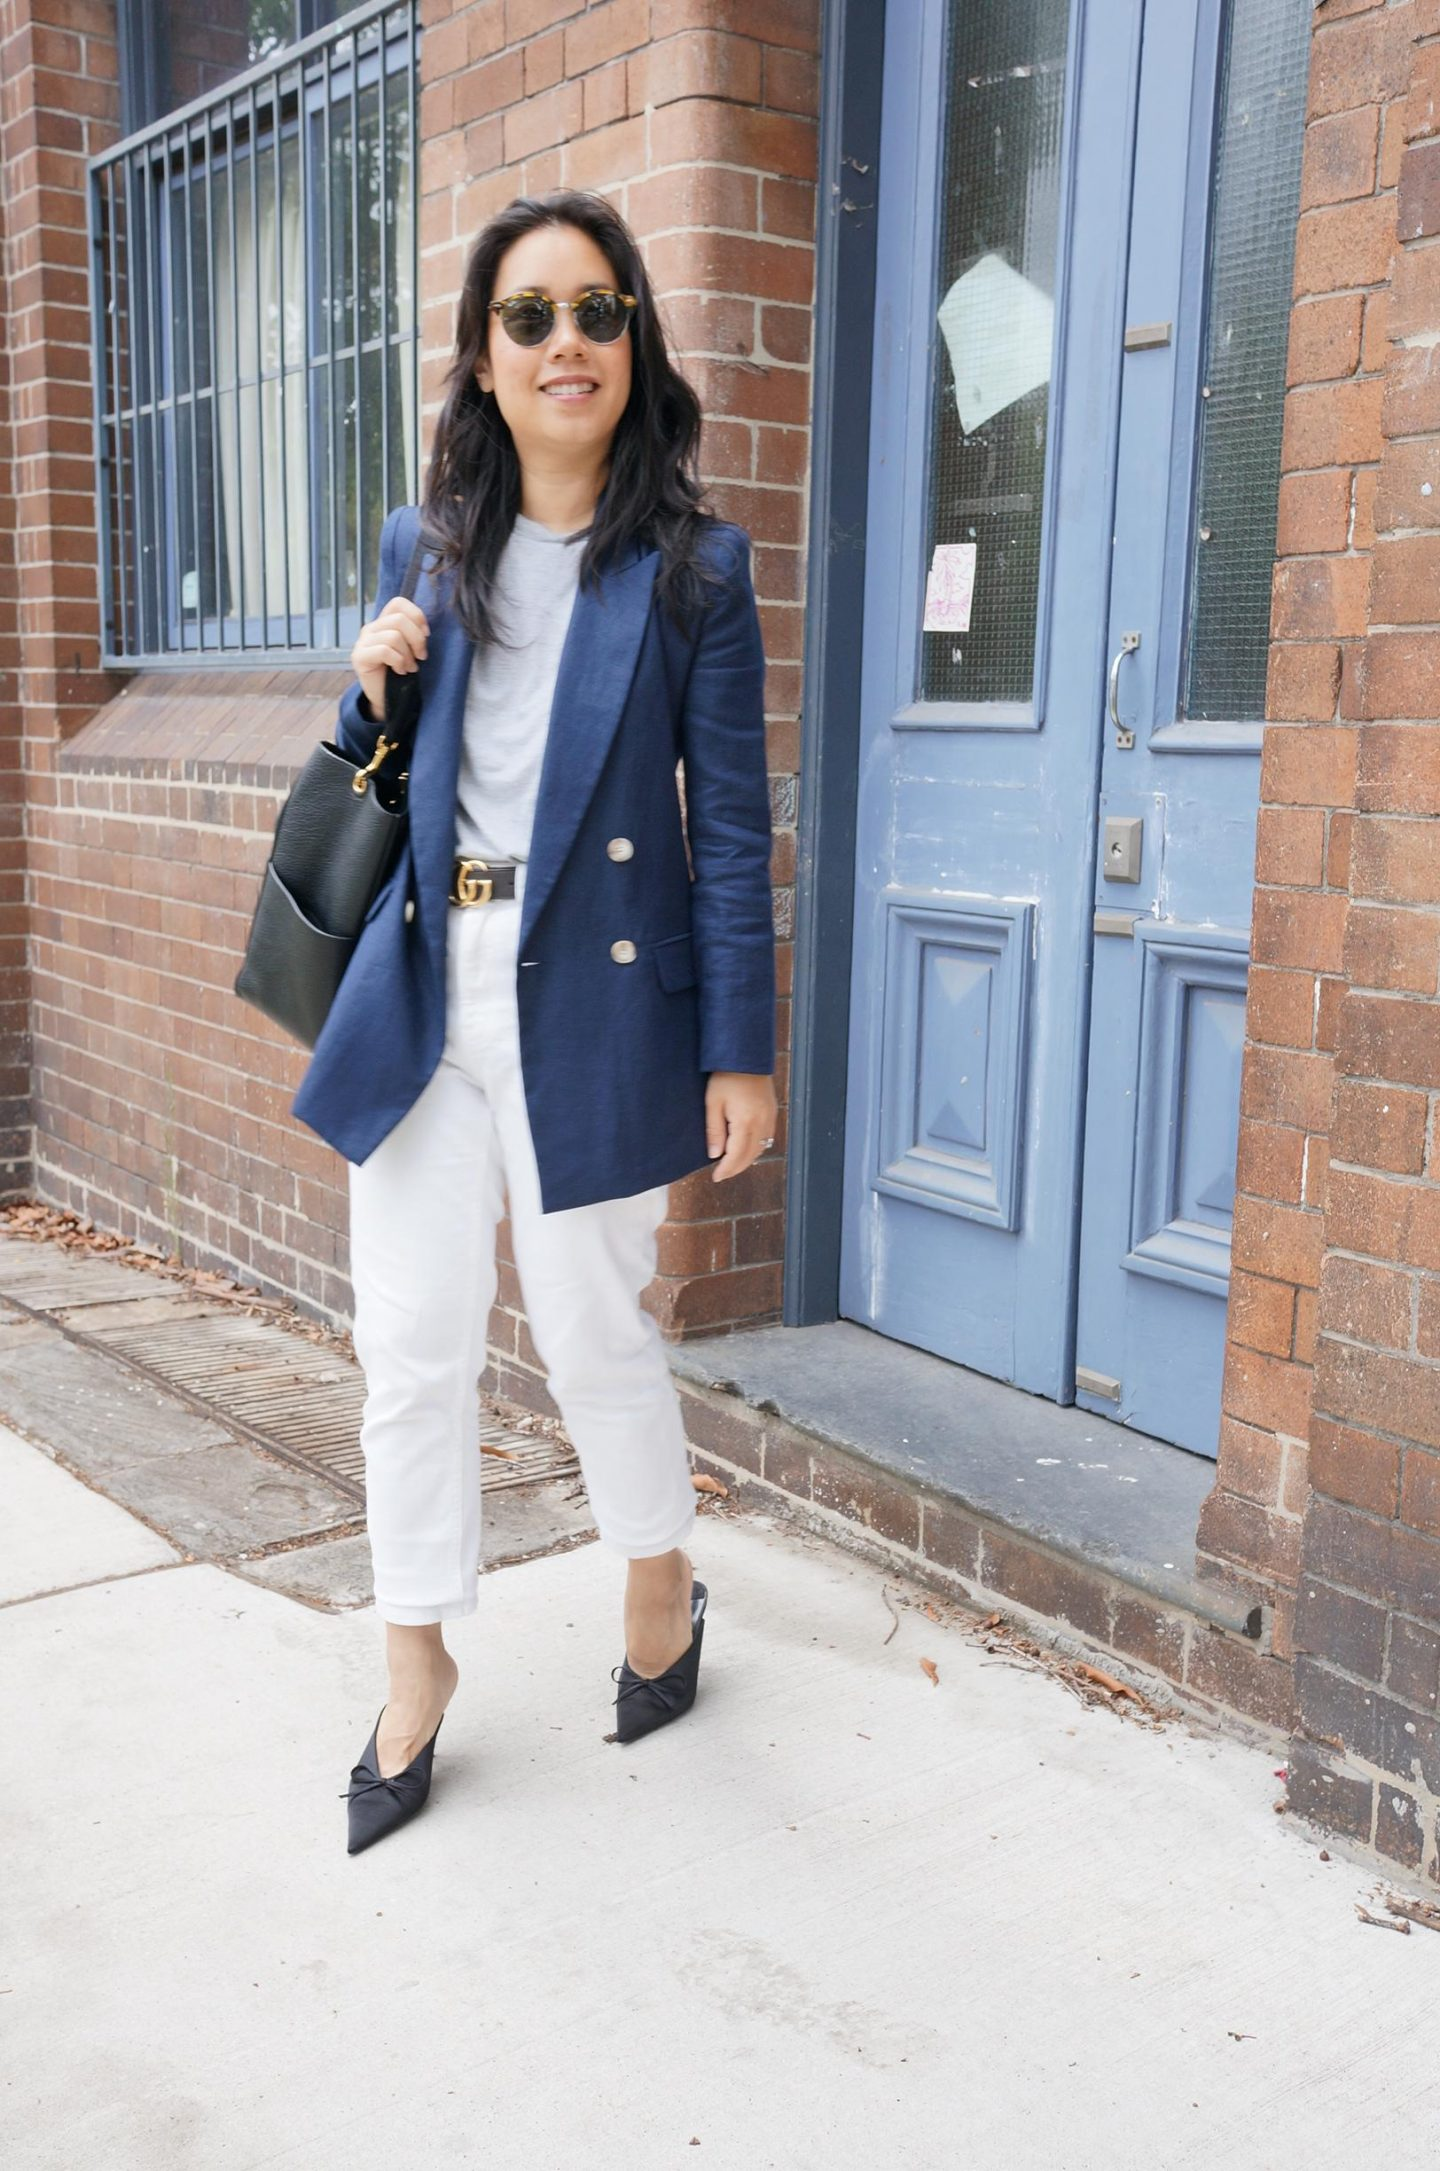 sarah lloyd duchess of cambridge navy blazer styled in smart casual outfit in blog post about first designer purchase tips